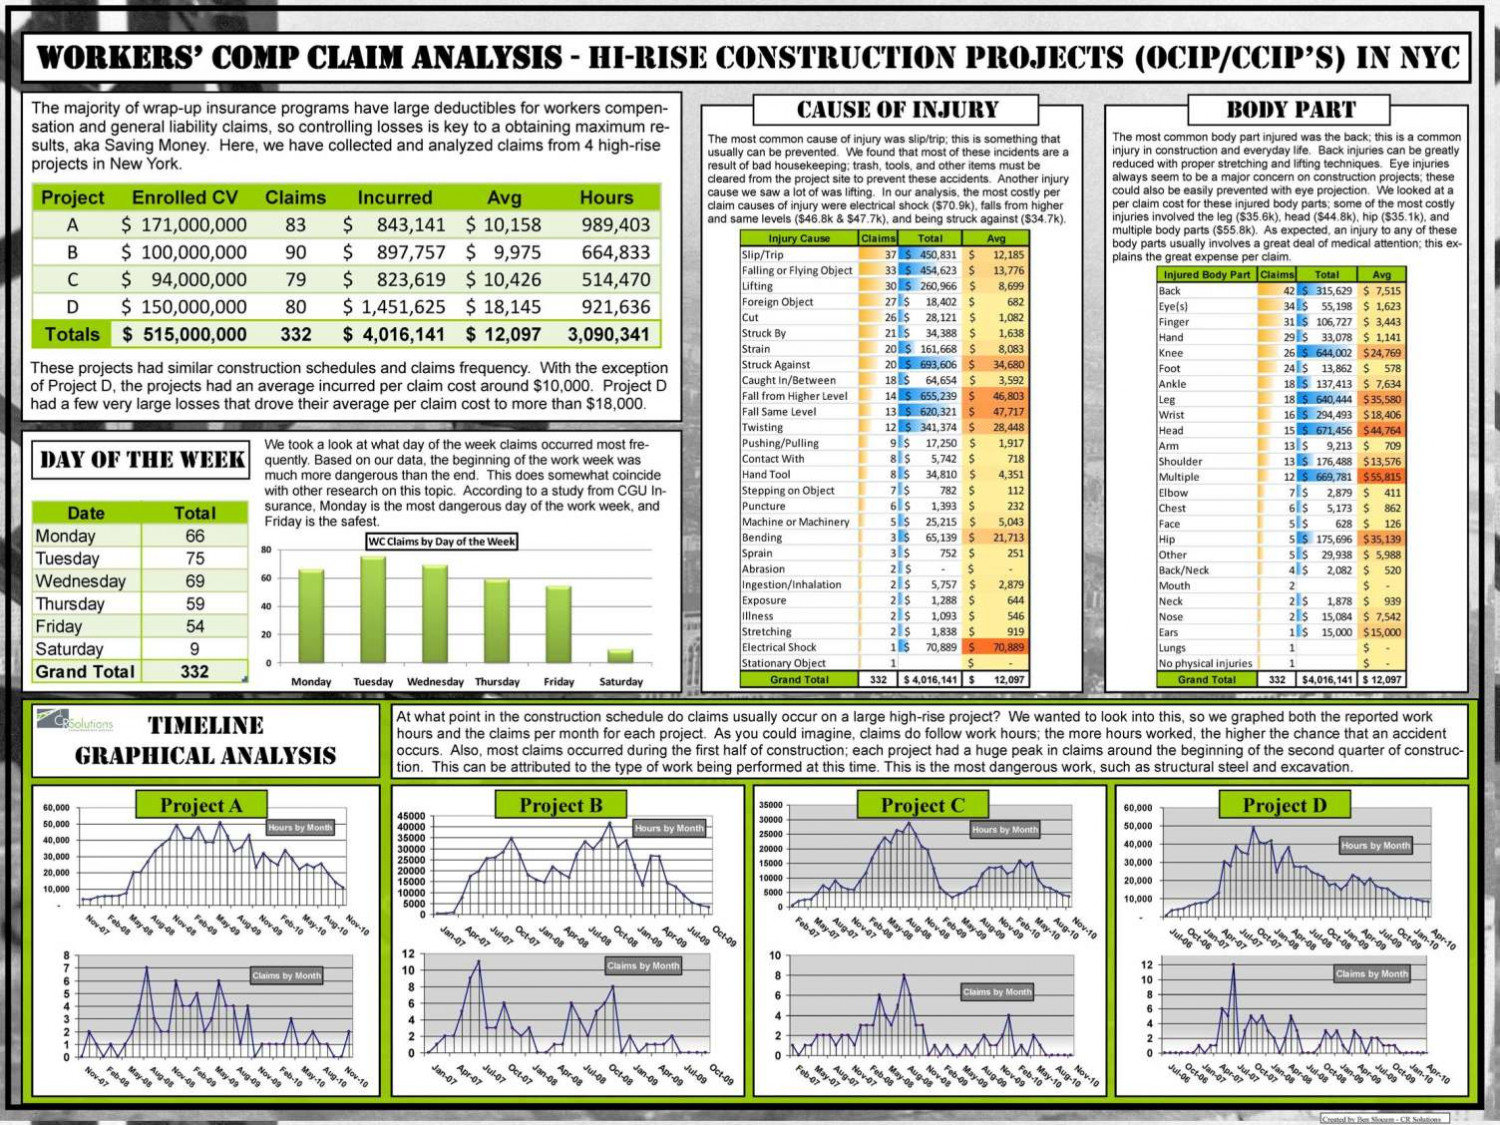 Worker's Comp Claim Analysis Infographic